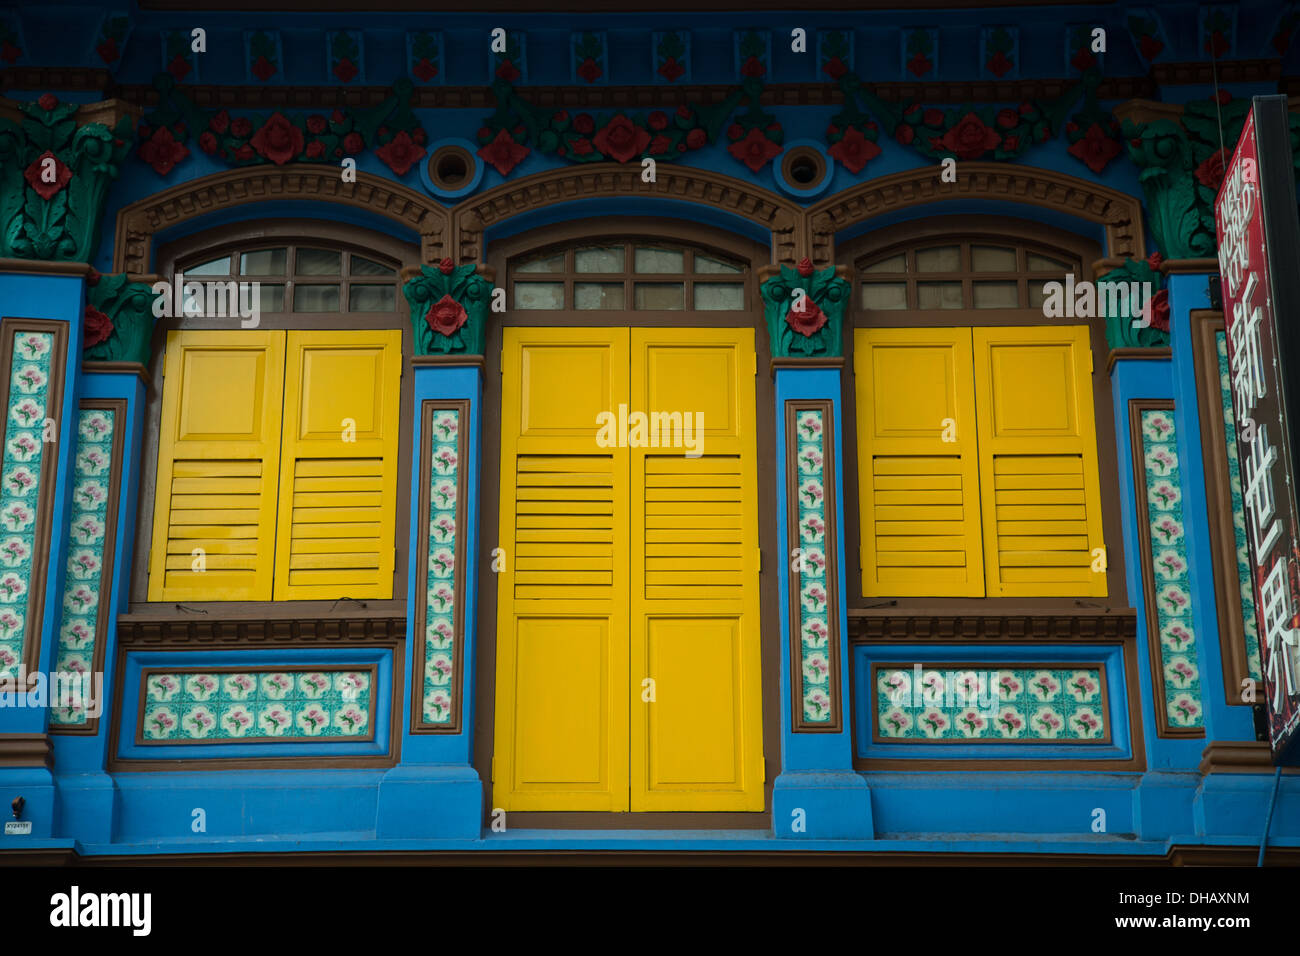 Shophouses are vernacular architectural buildings found in Southeast Asia, particularly Singapore and Penang. Stock Photo